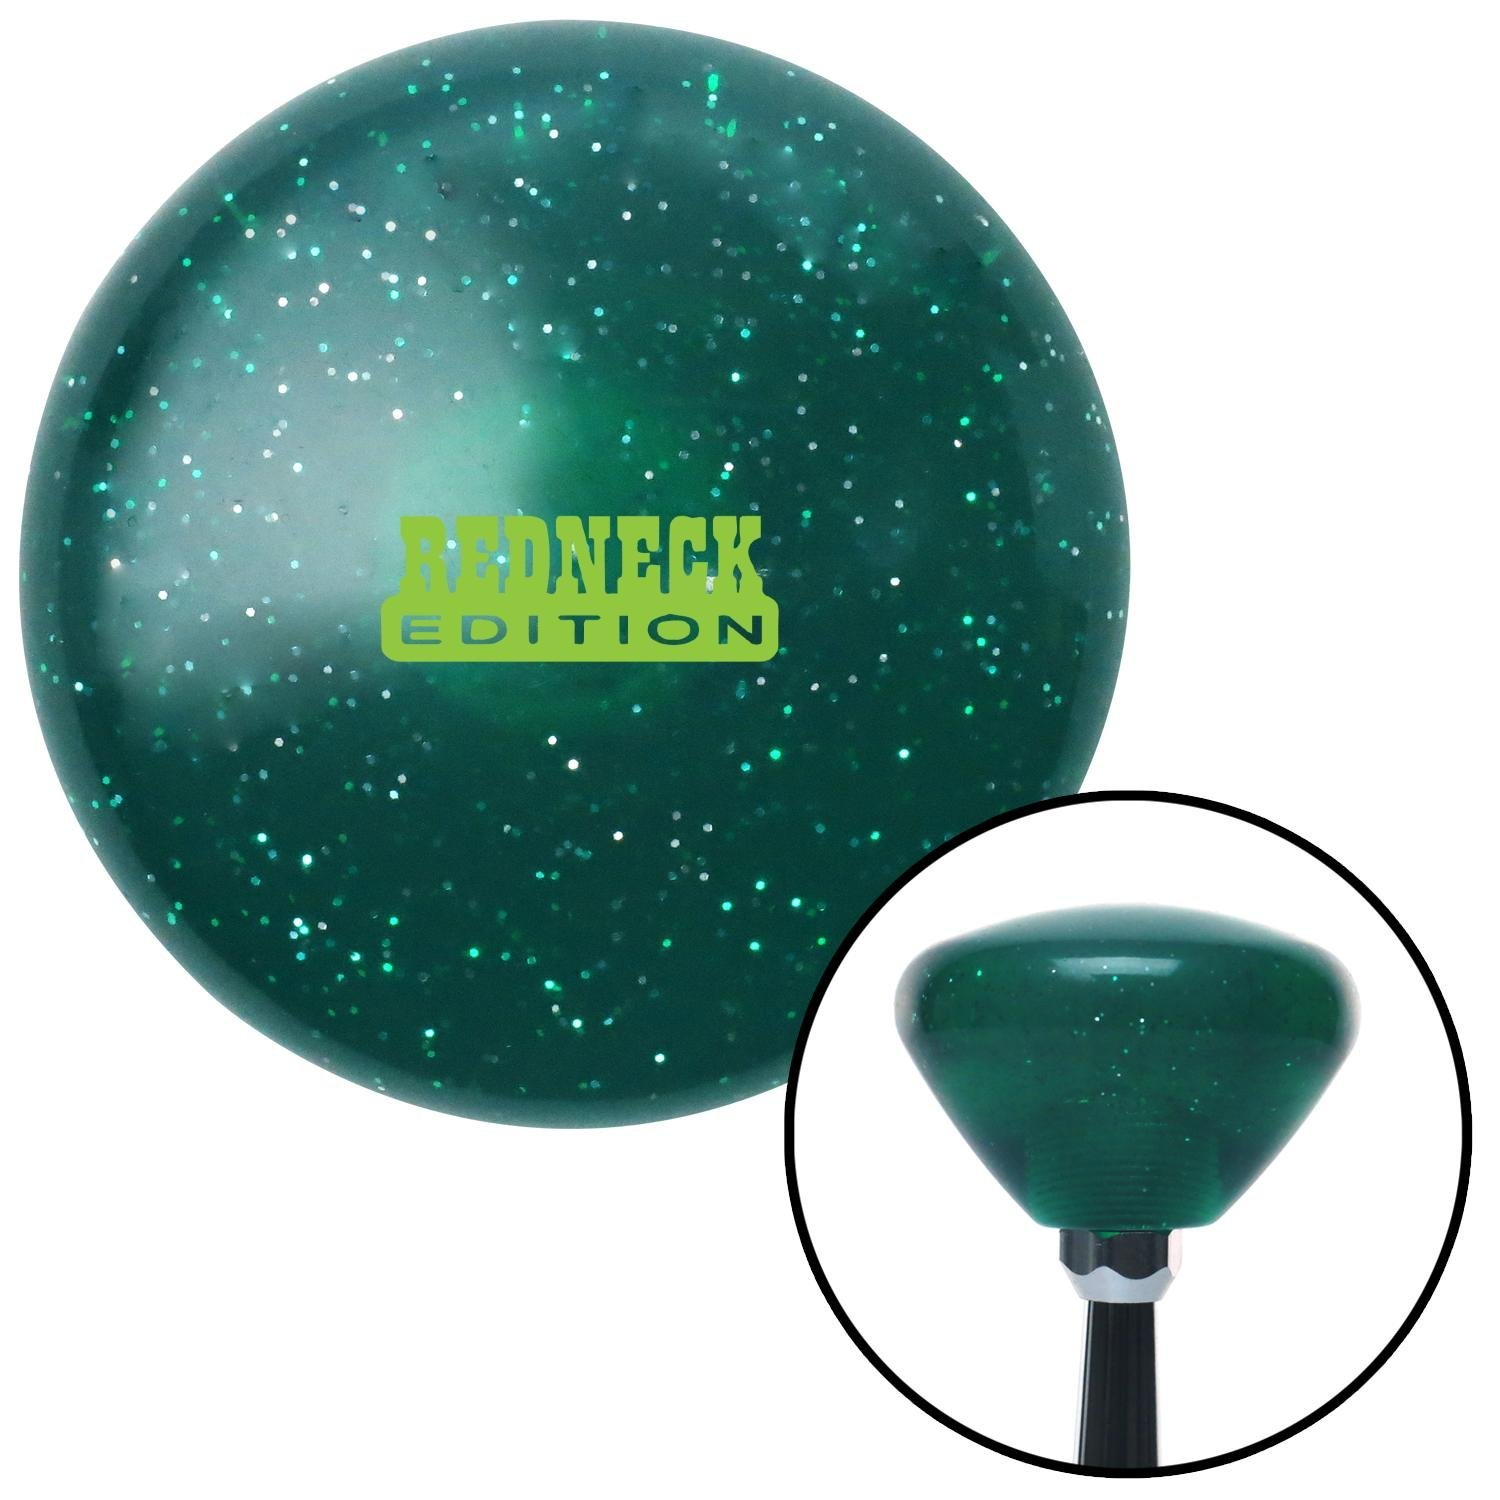 American Shifter 292602 Shift Knob Green Redneck Edition Green Retro Metal Flake with M16 x 1.5 Insert